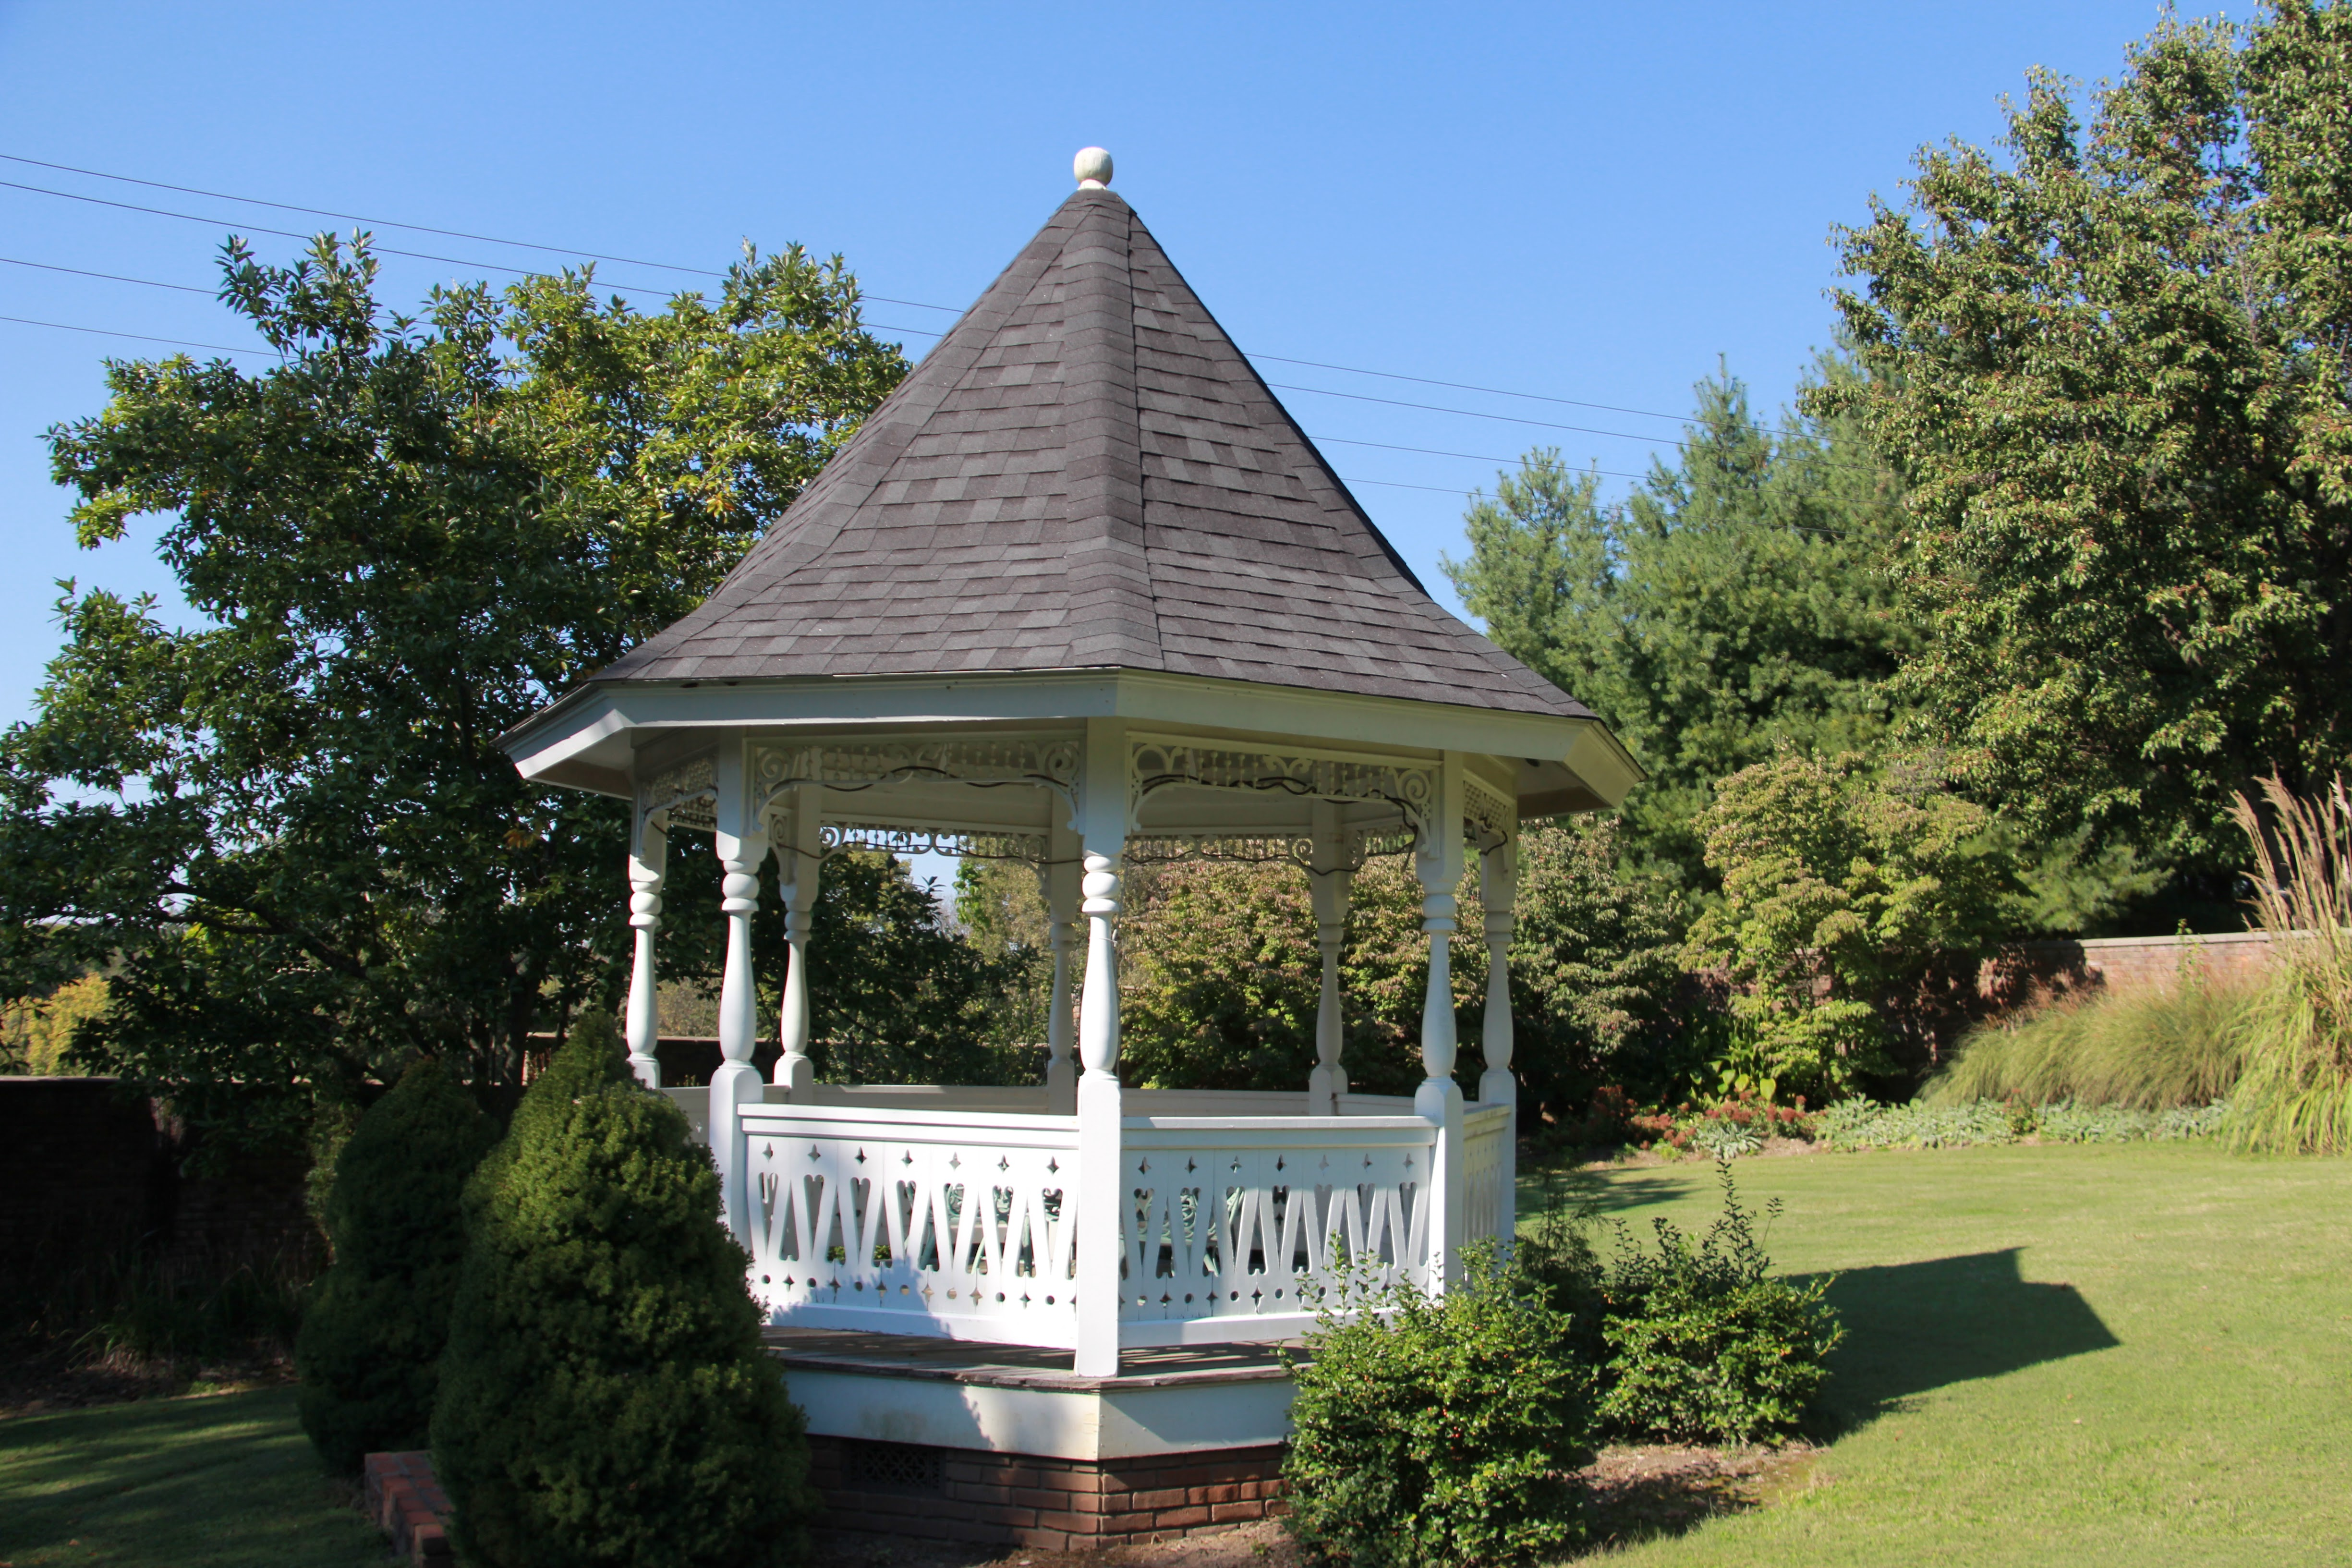 Gazebo in the back of the house